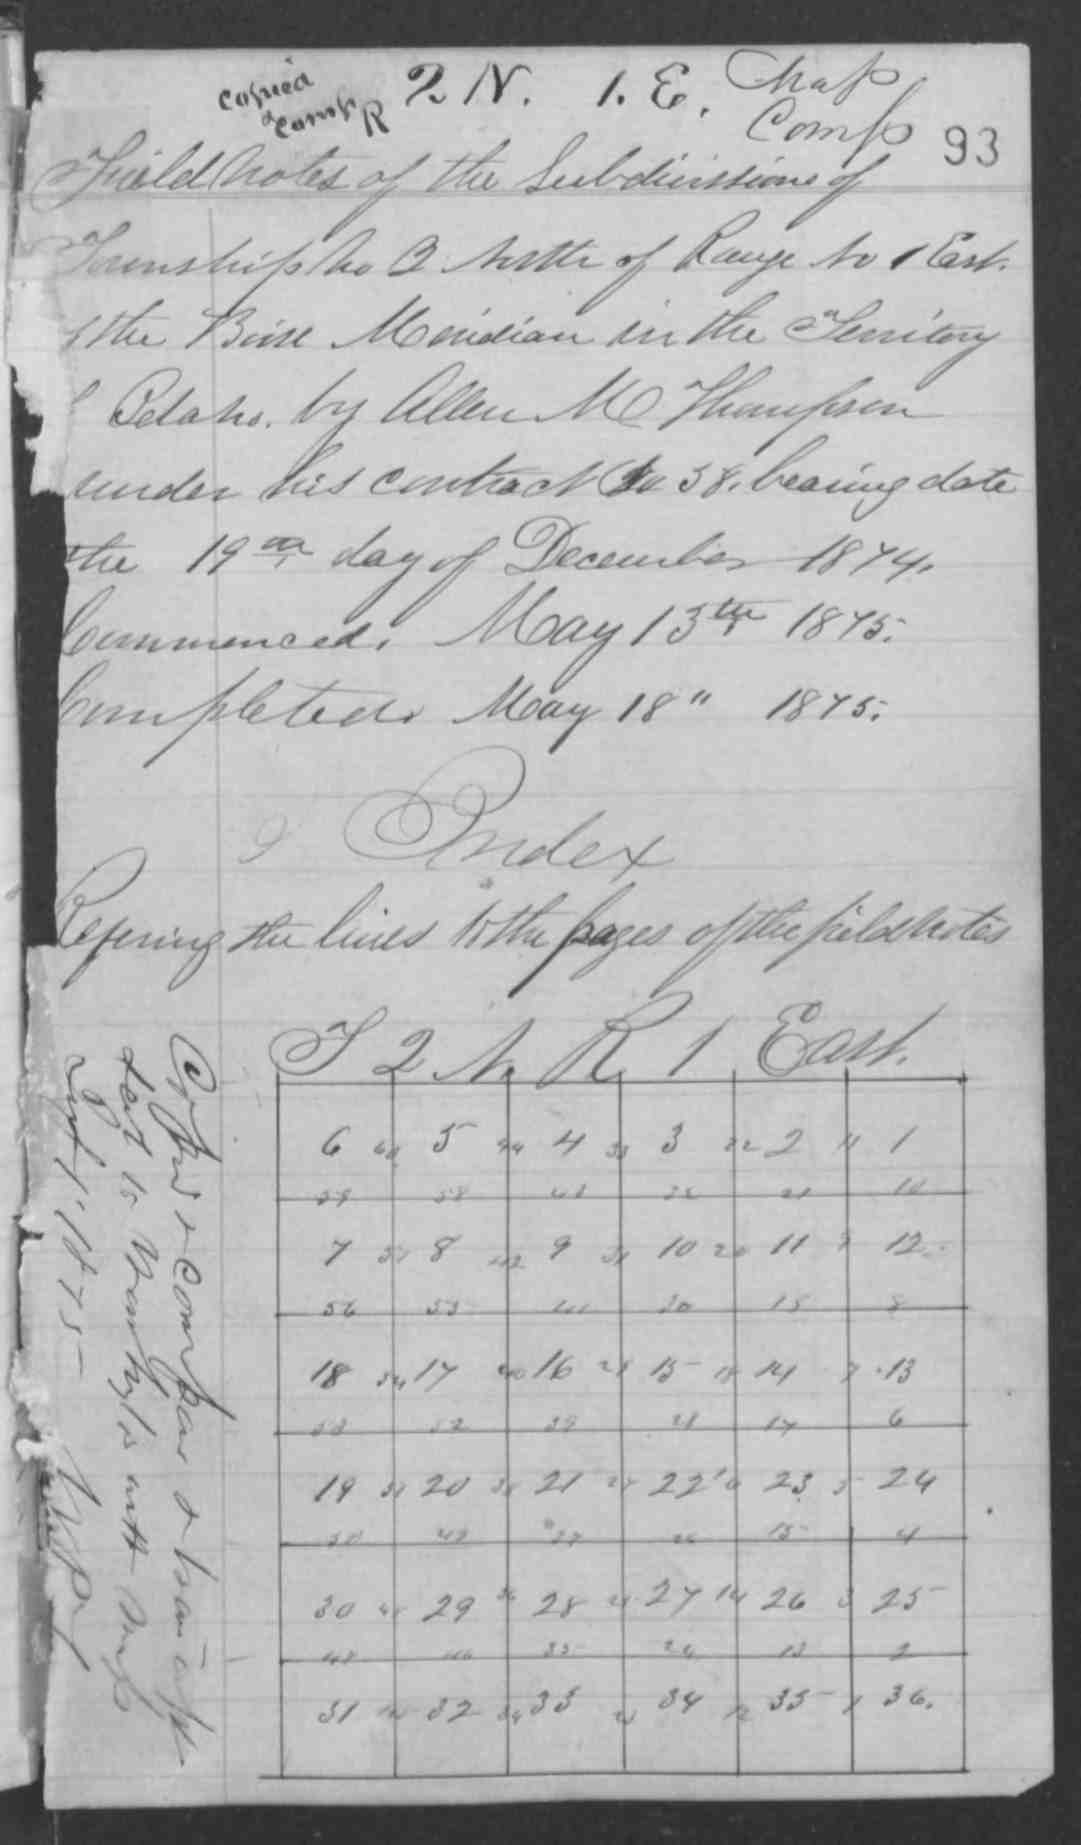 7/10/12: Historical Research and the Importance of Cursive